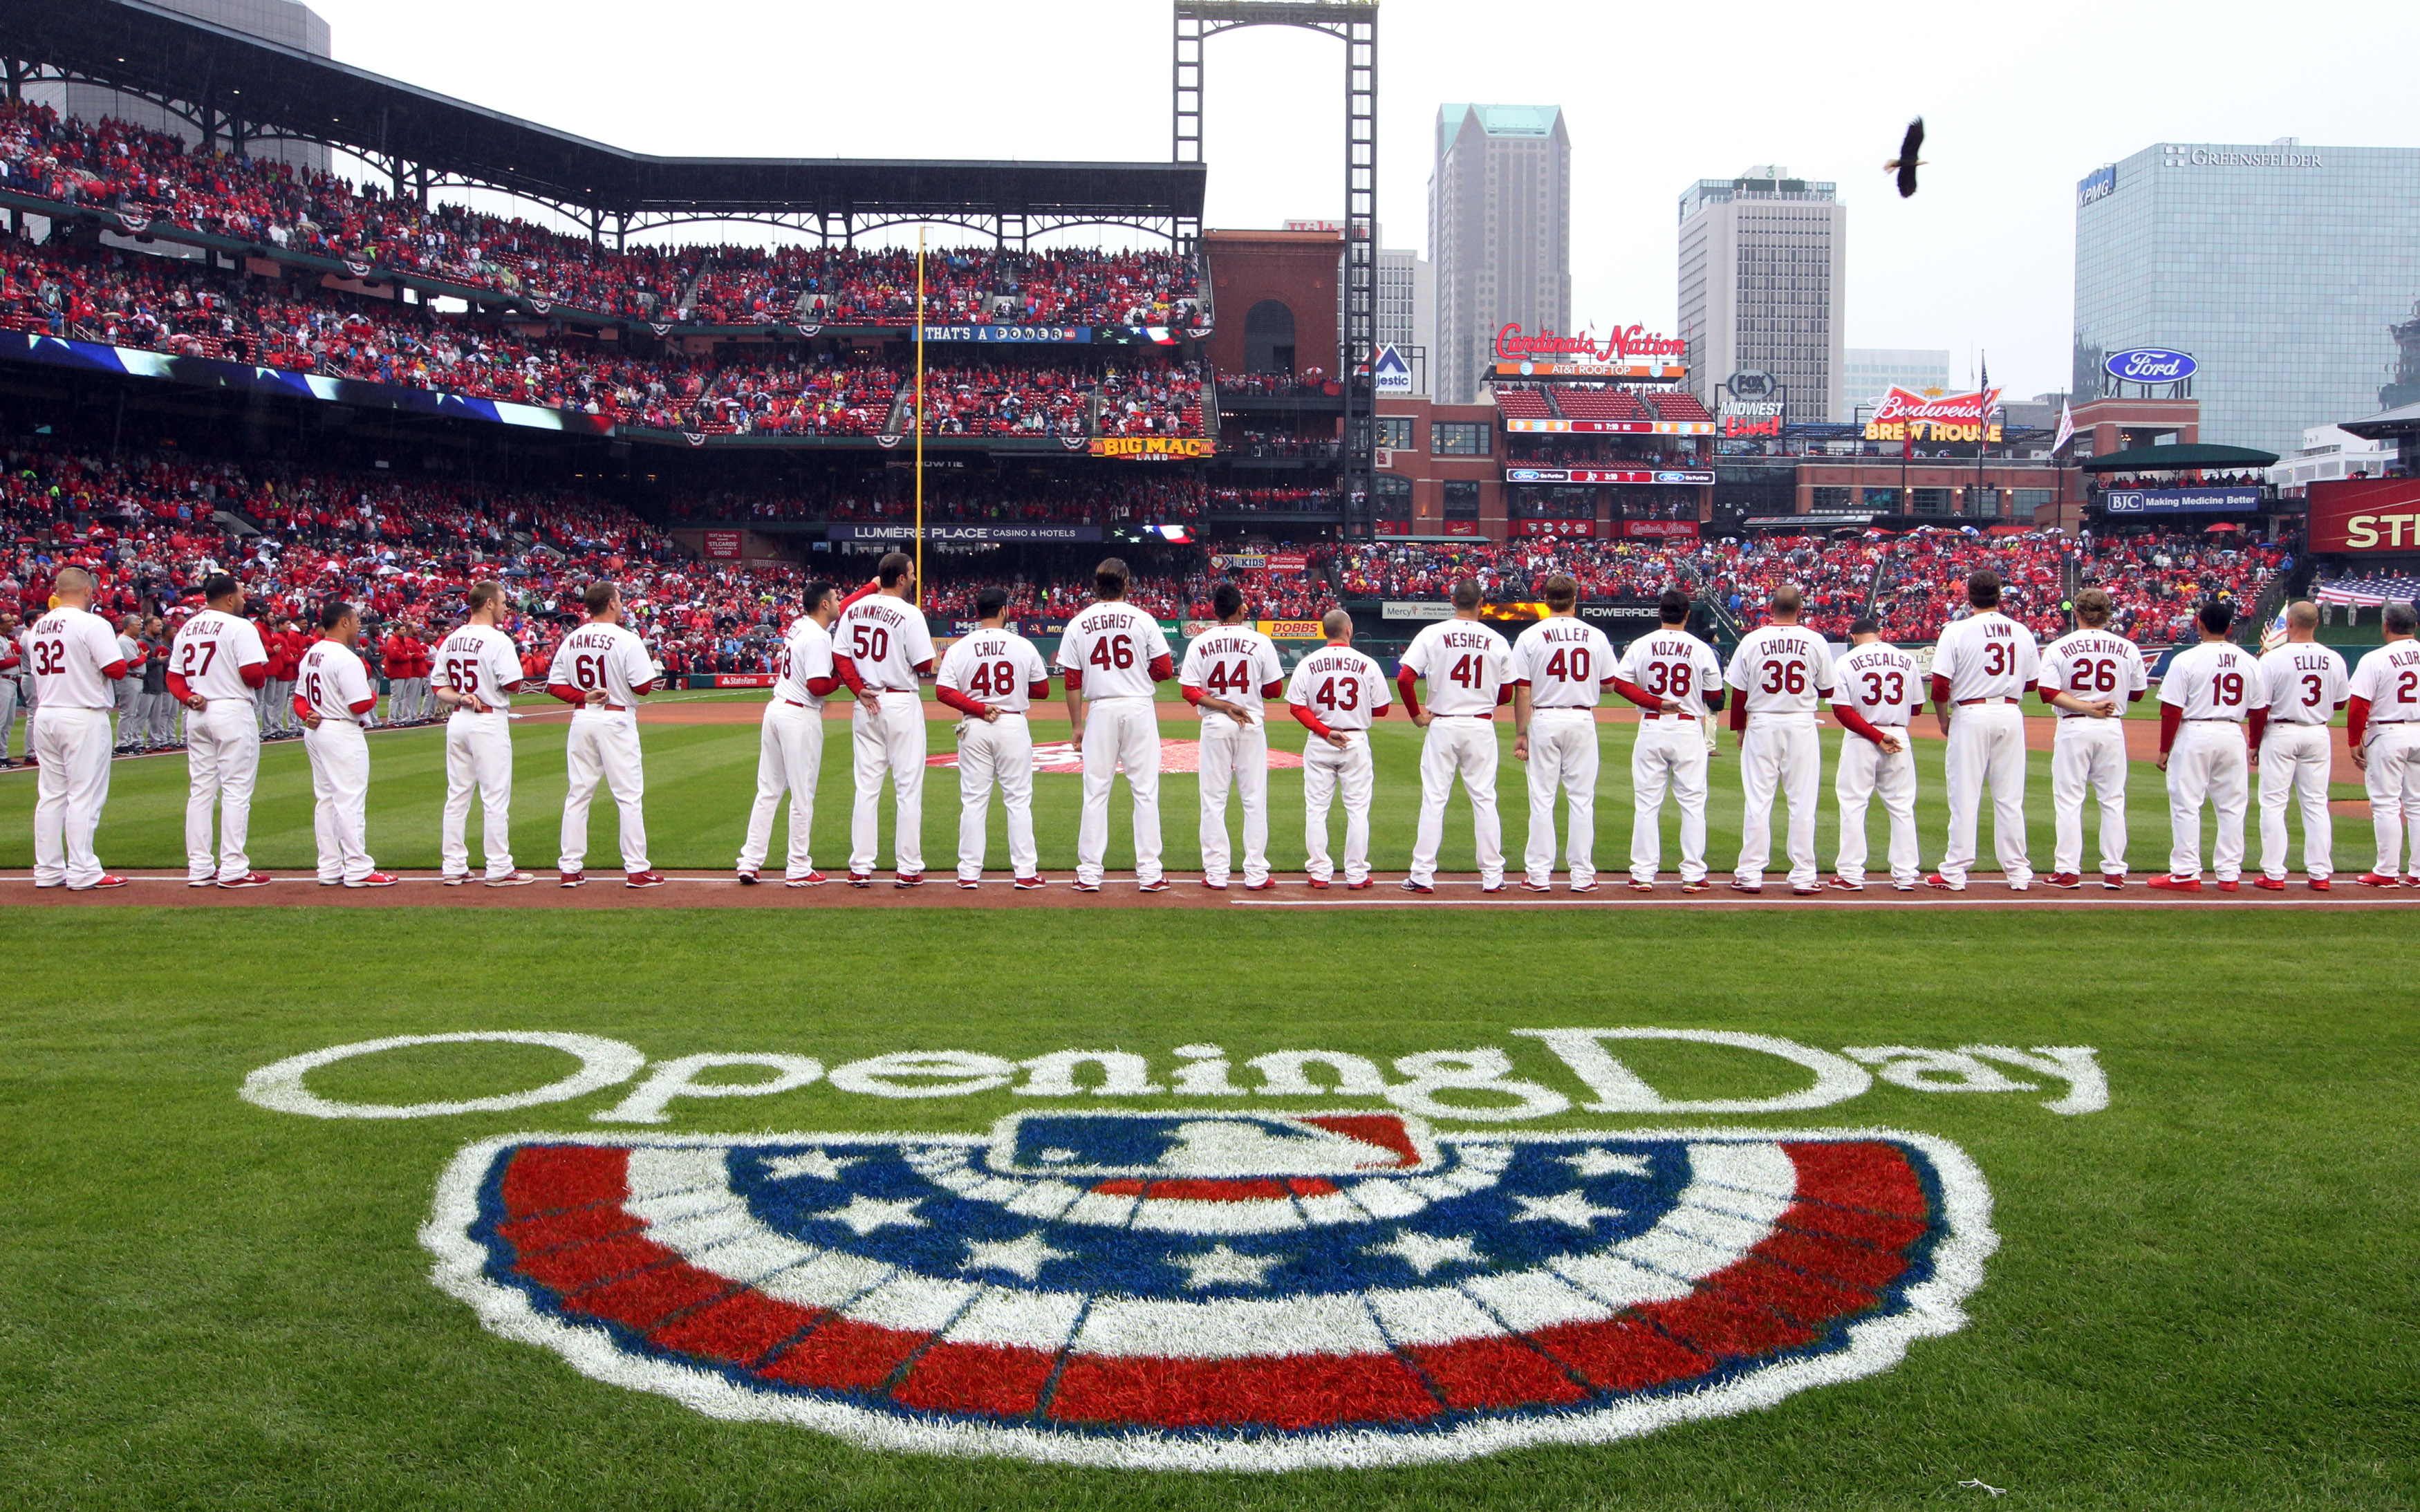 st. louis cardinals homestand highlights for this week – cardinal